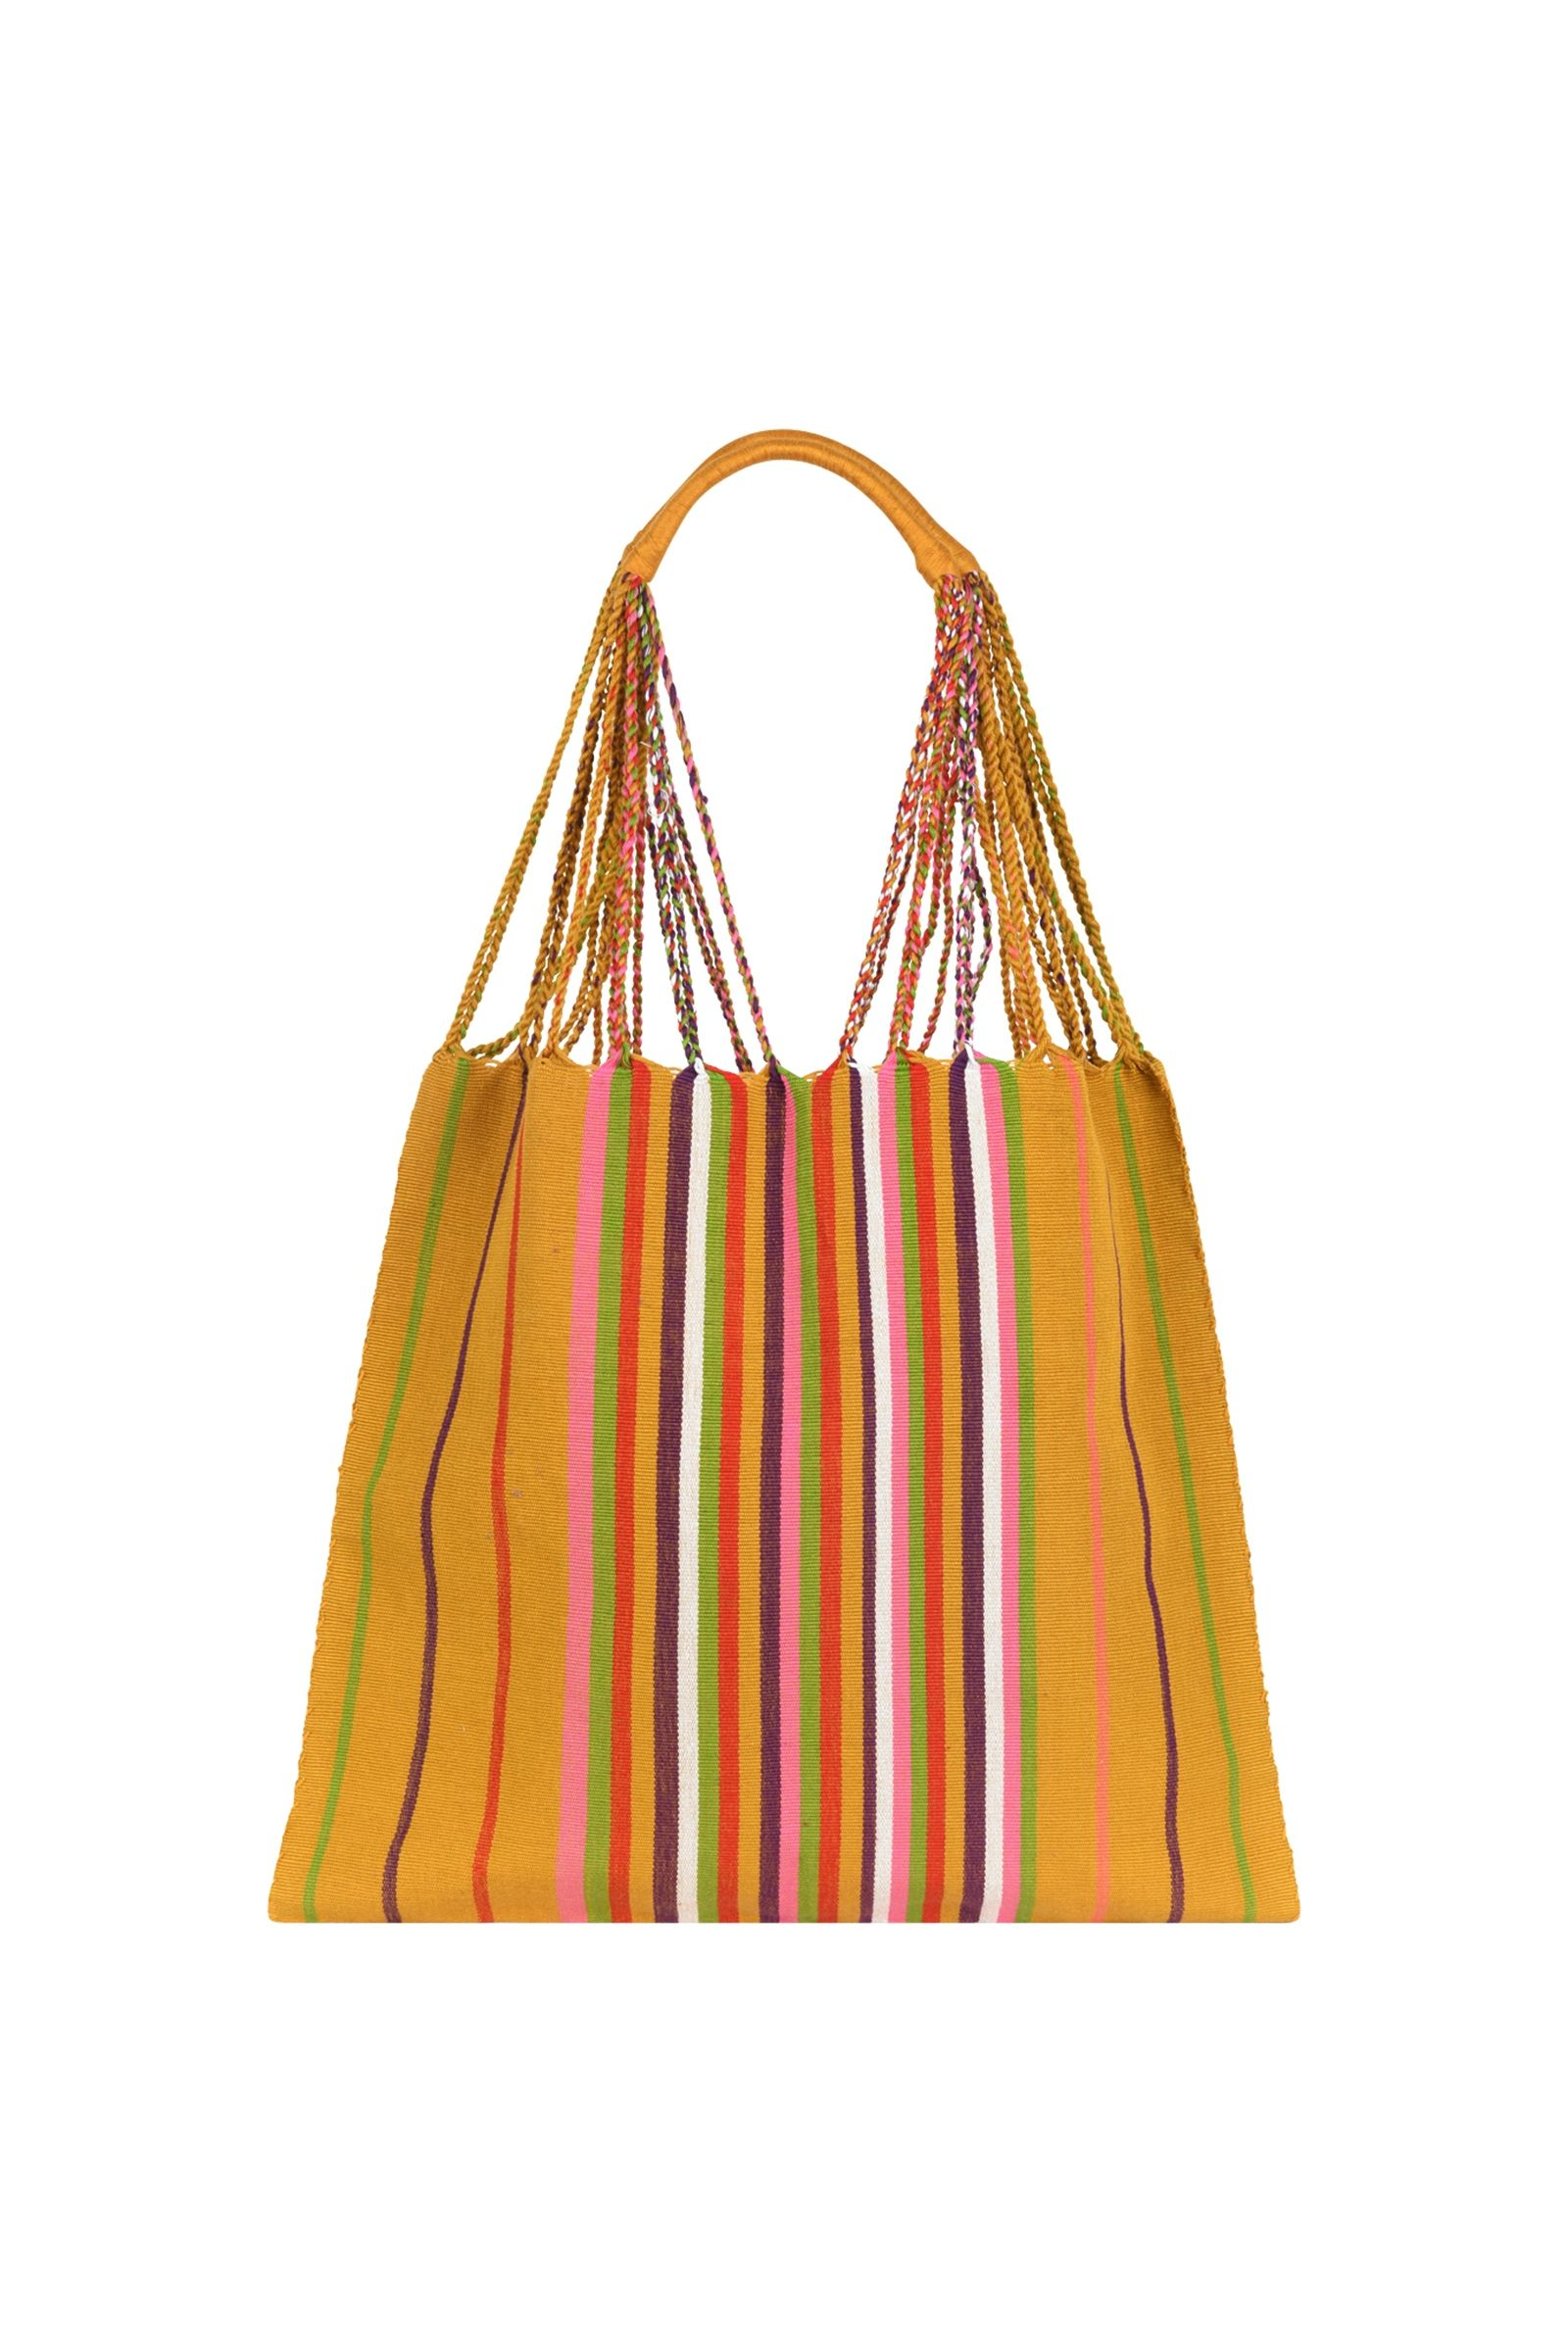 Image 3 du produit Sonora Stripes Bag